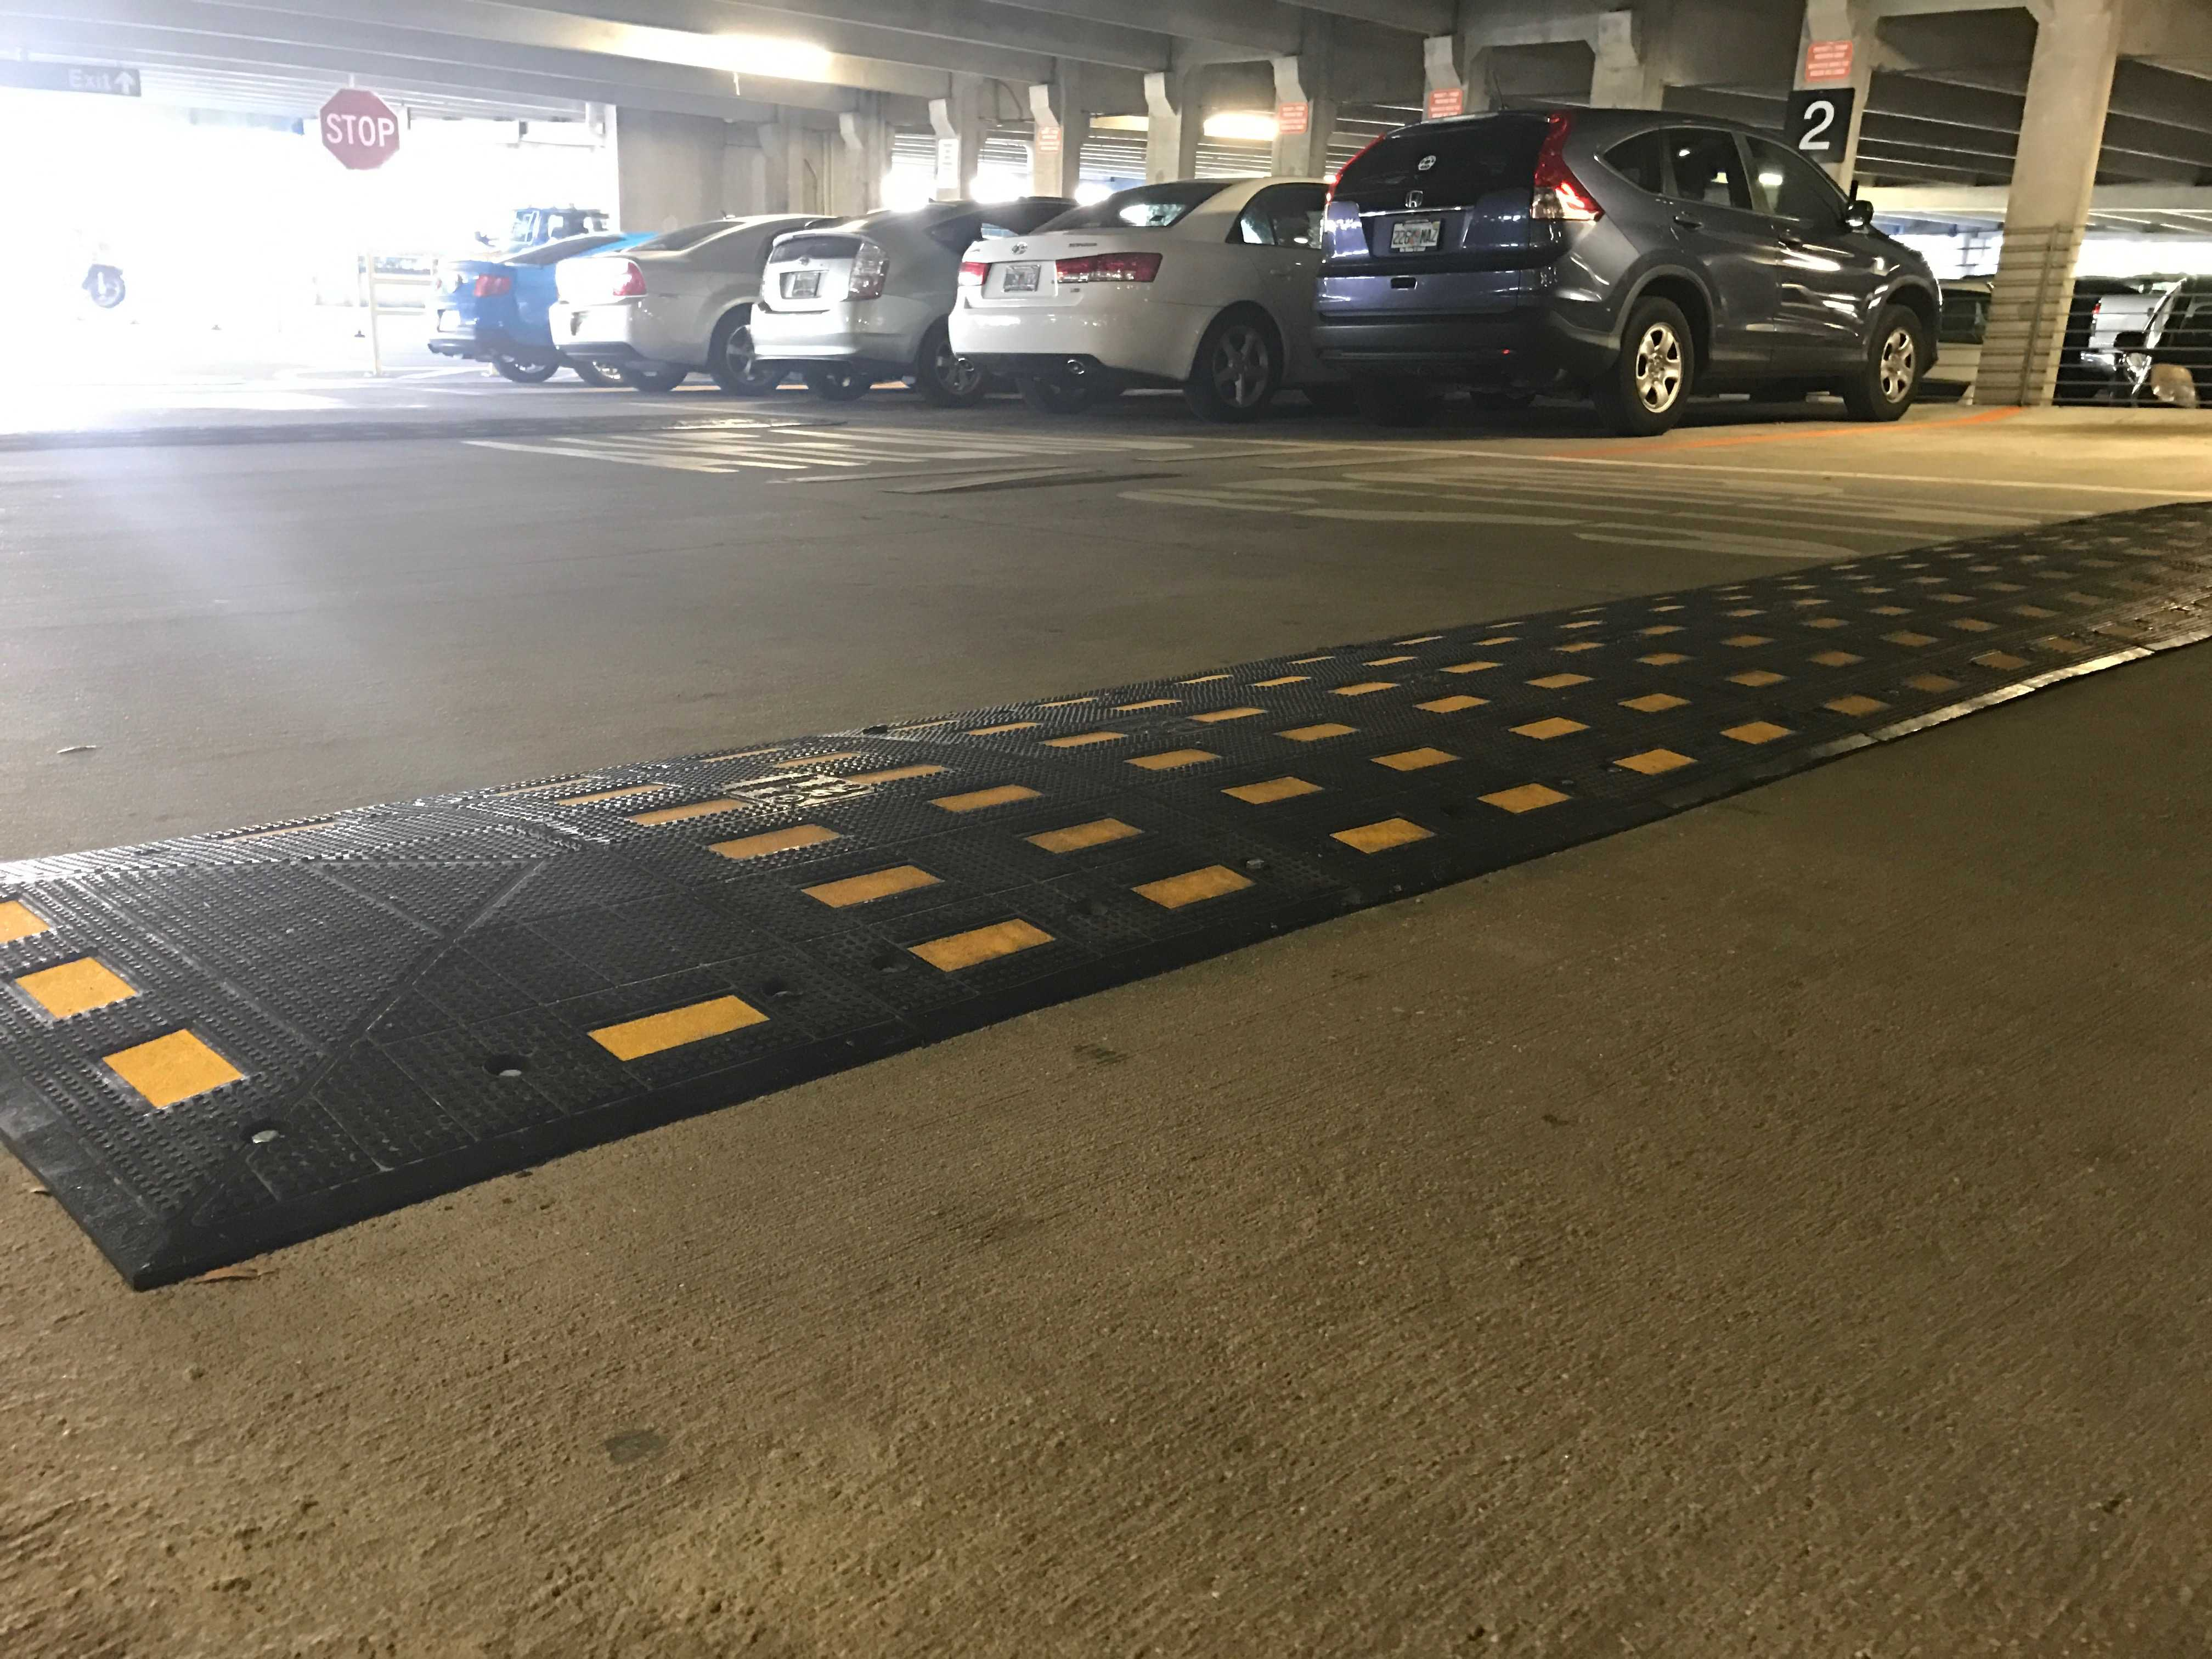 UNF adds speed bumps, signs, in Arena Parking Garage